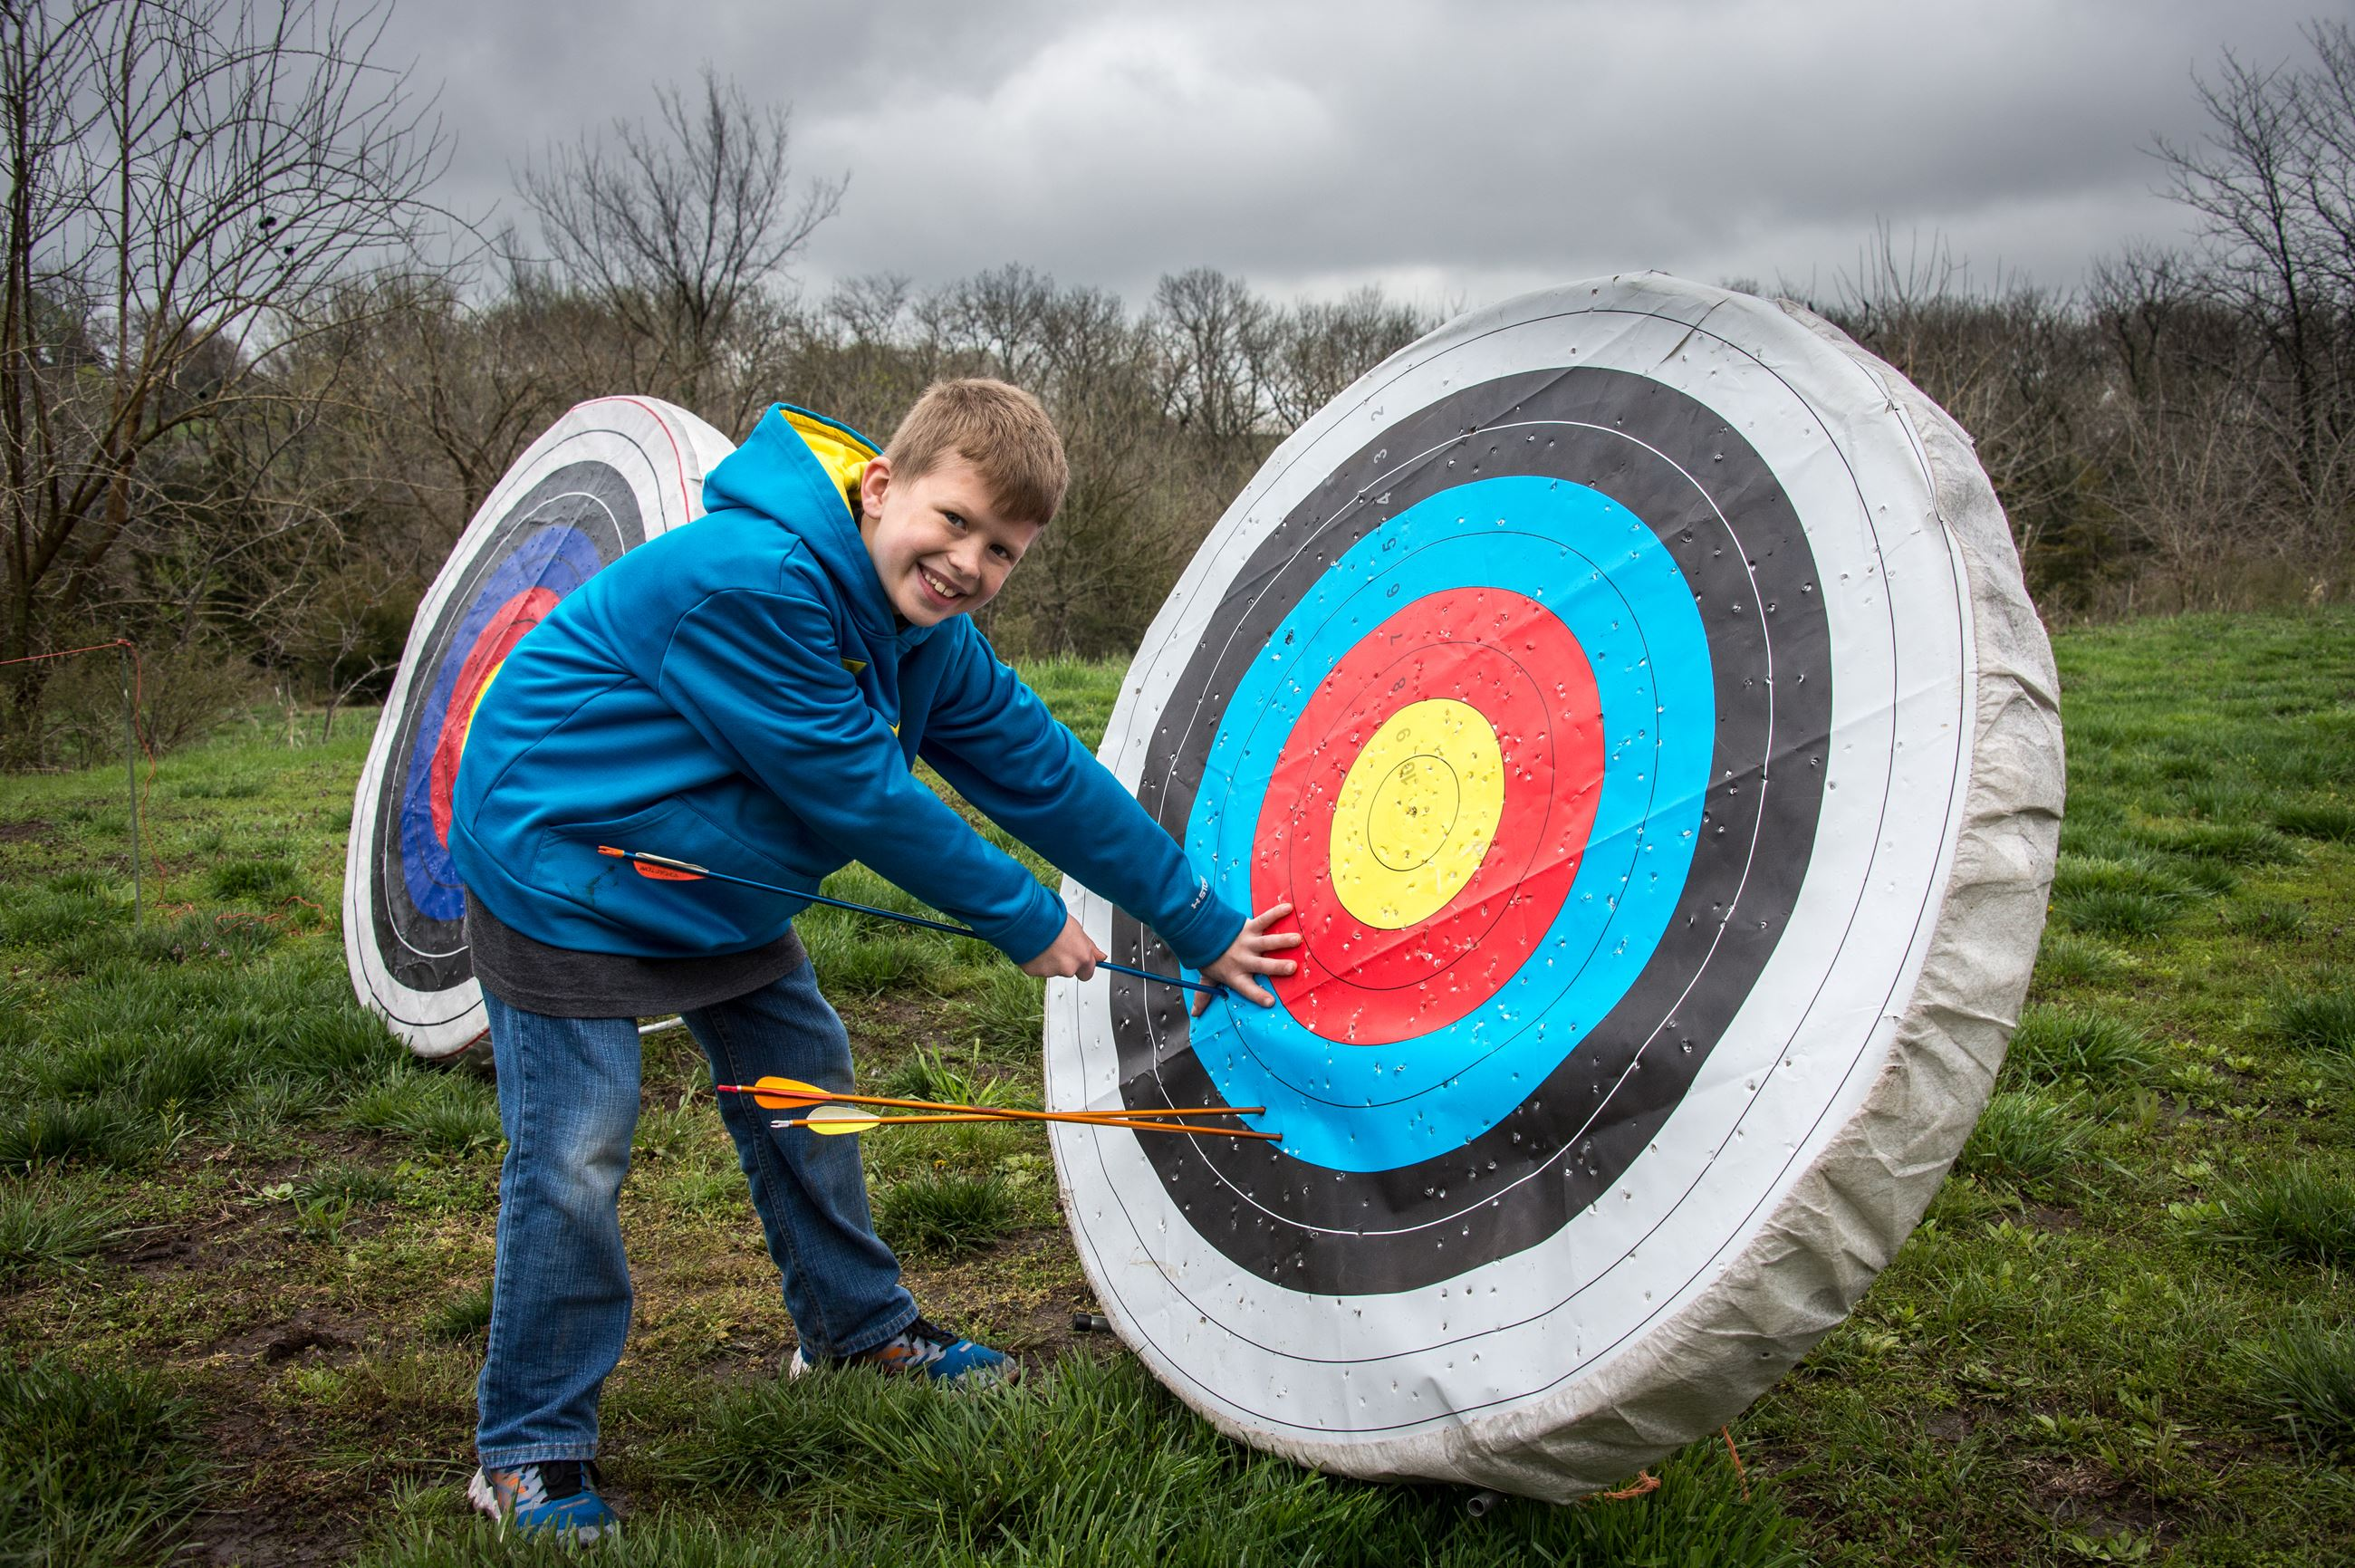 Participant at archery target